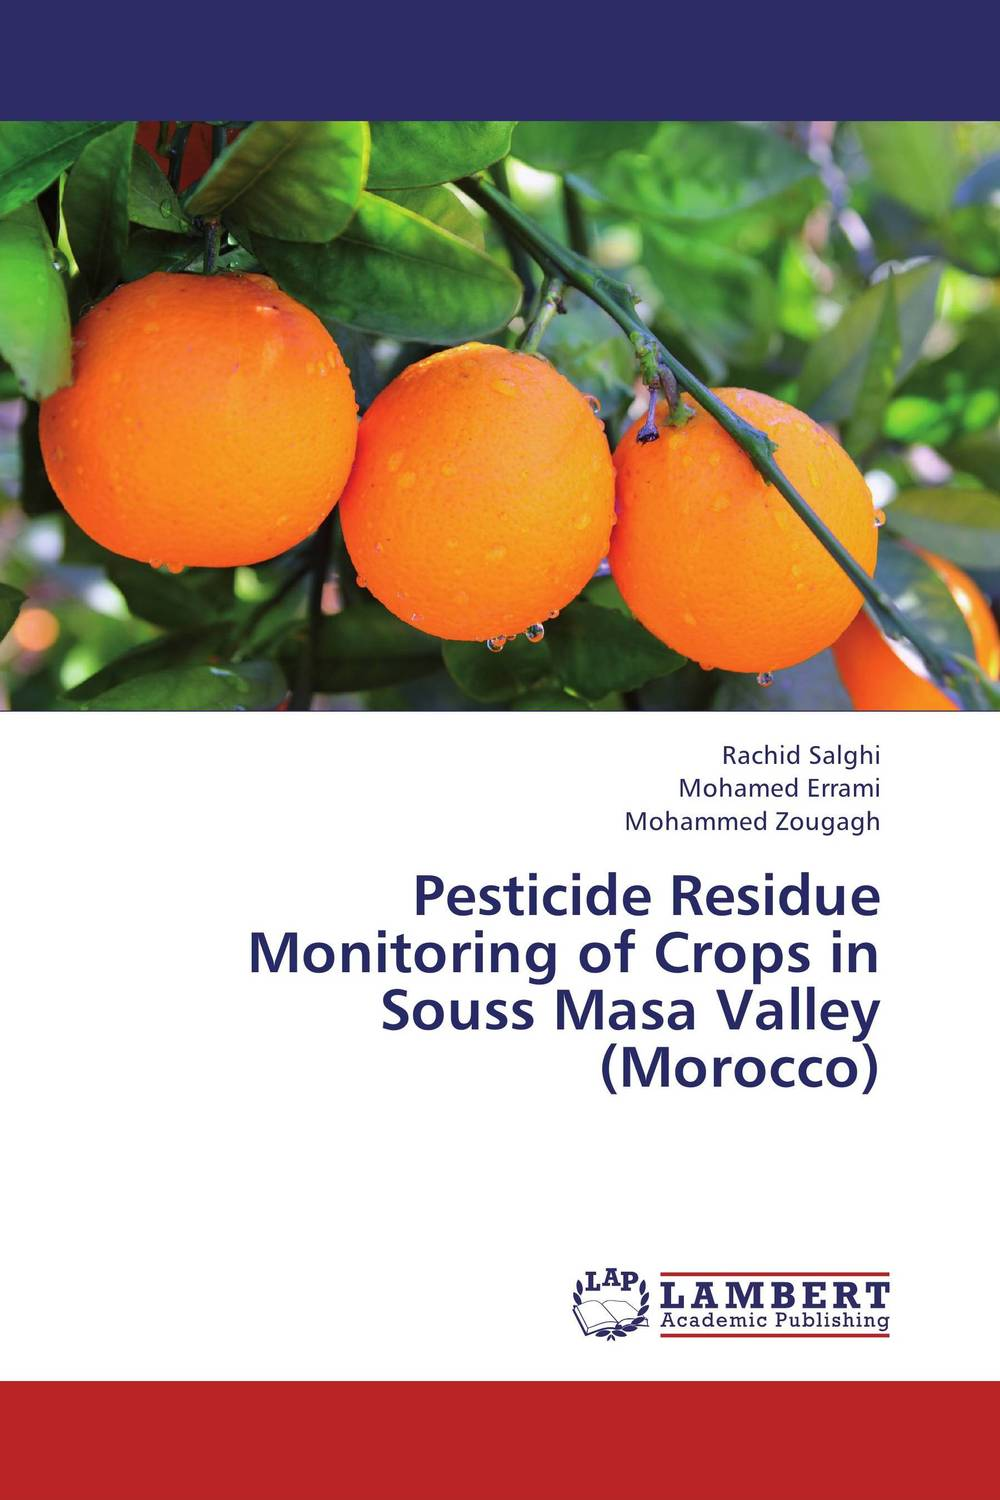 Pesticide Residue Monitoring of Crops in Souss Masa Valley (Morocco)